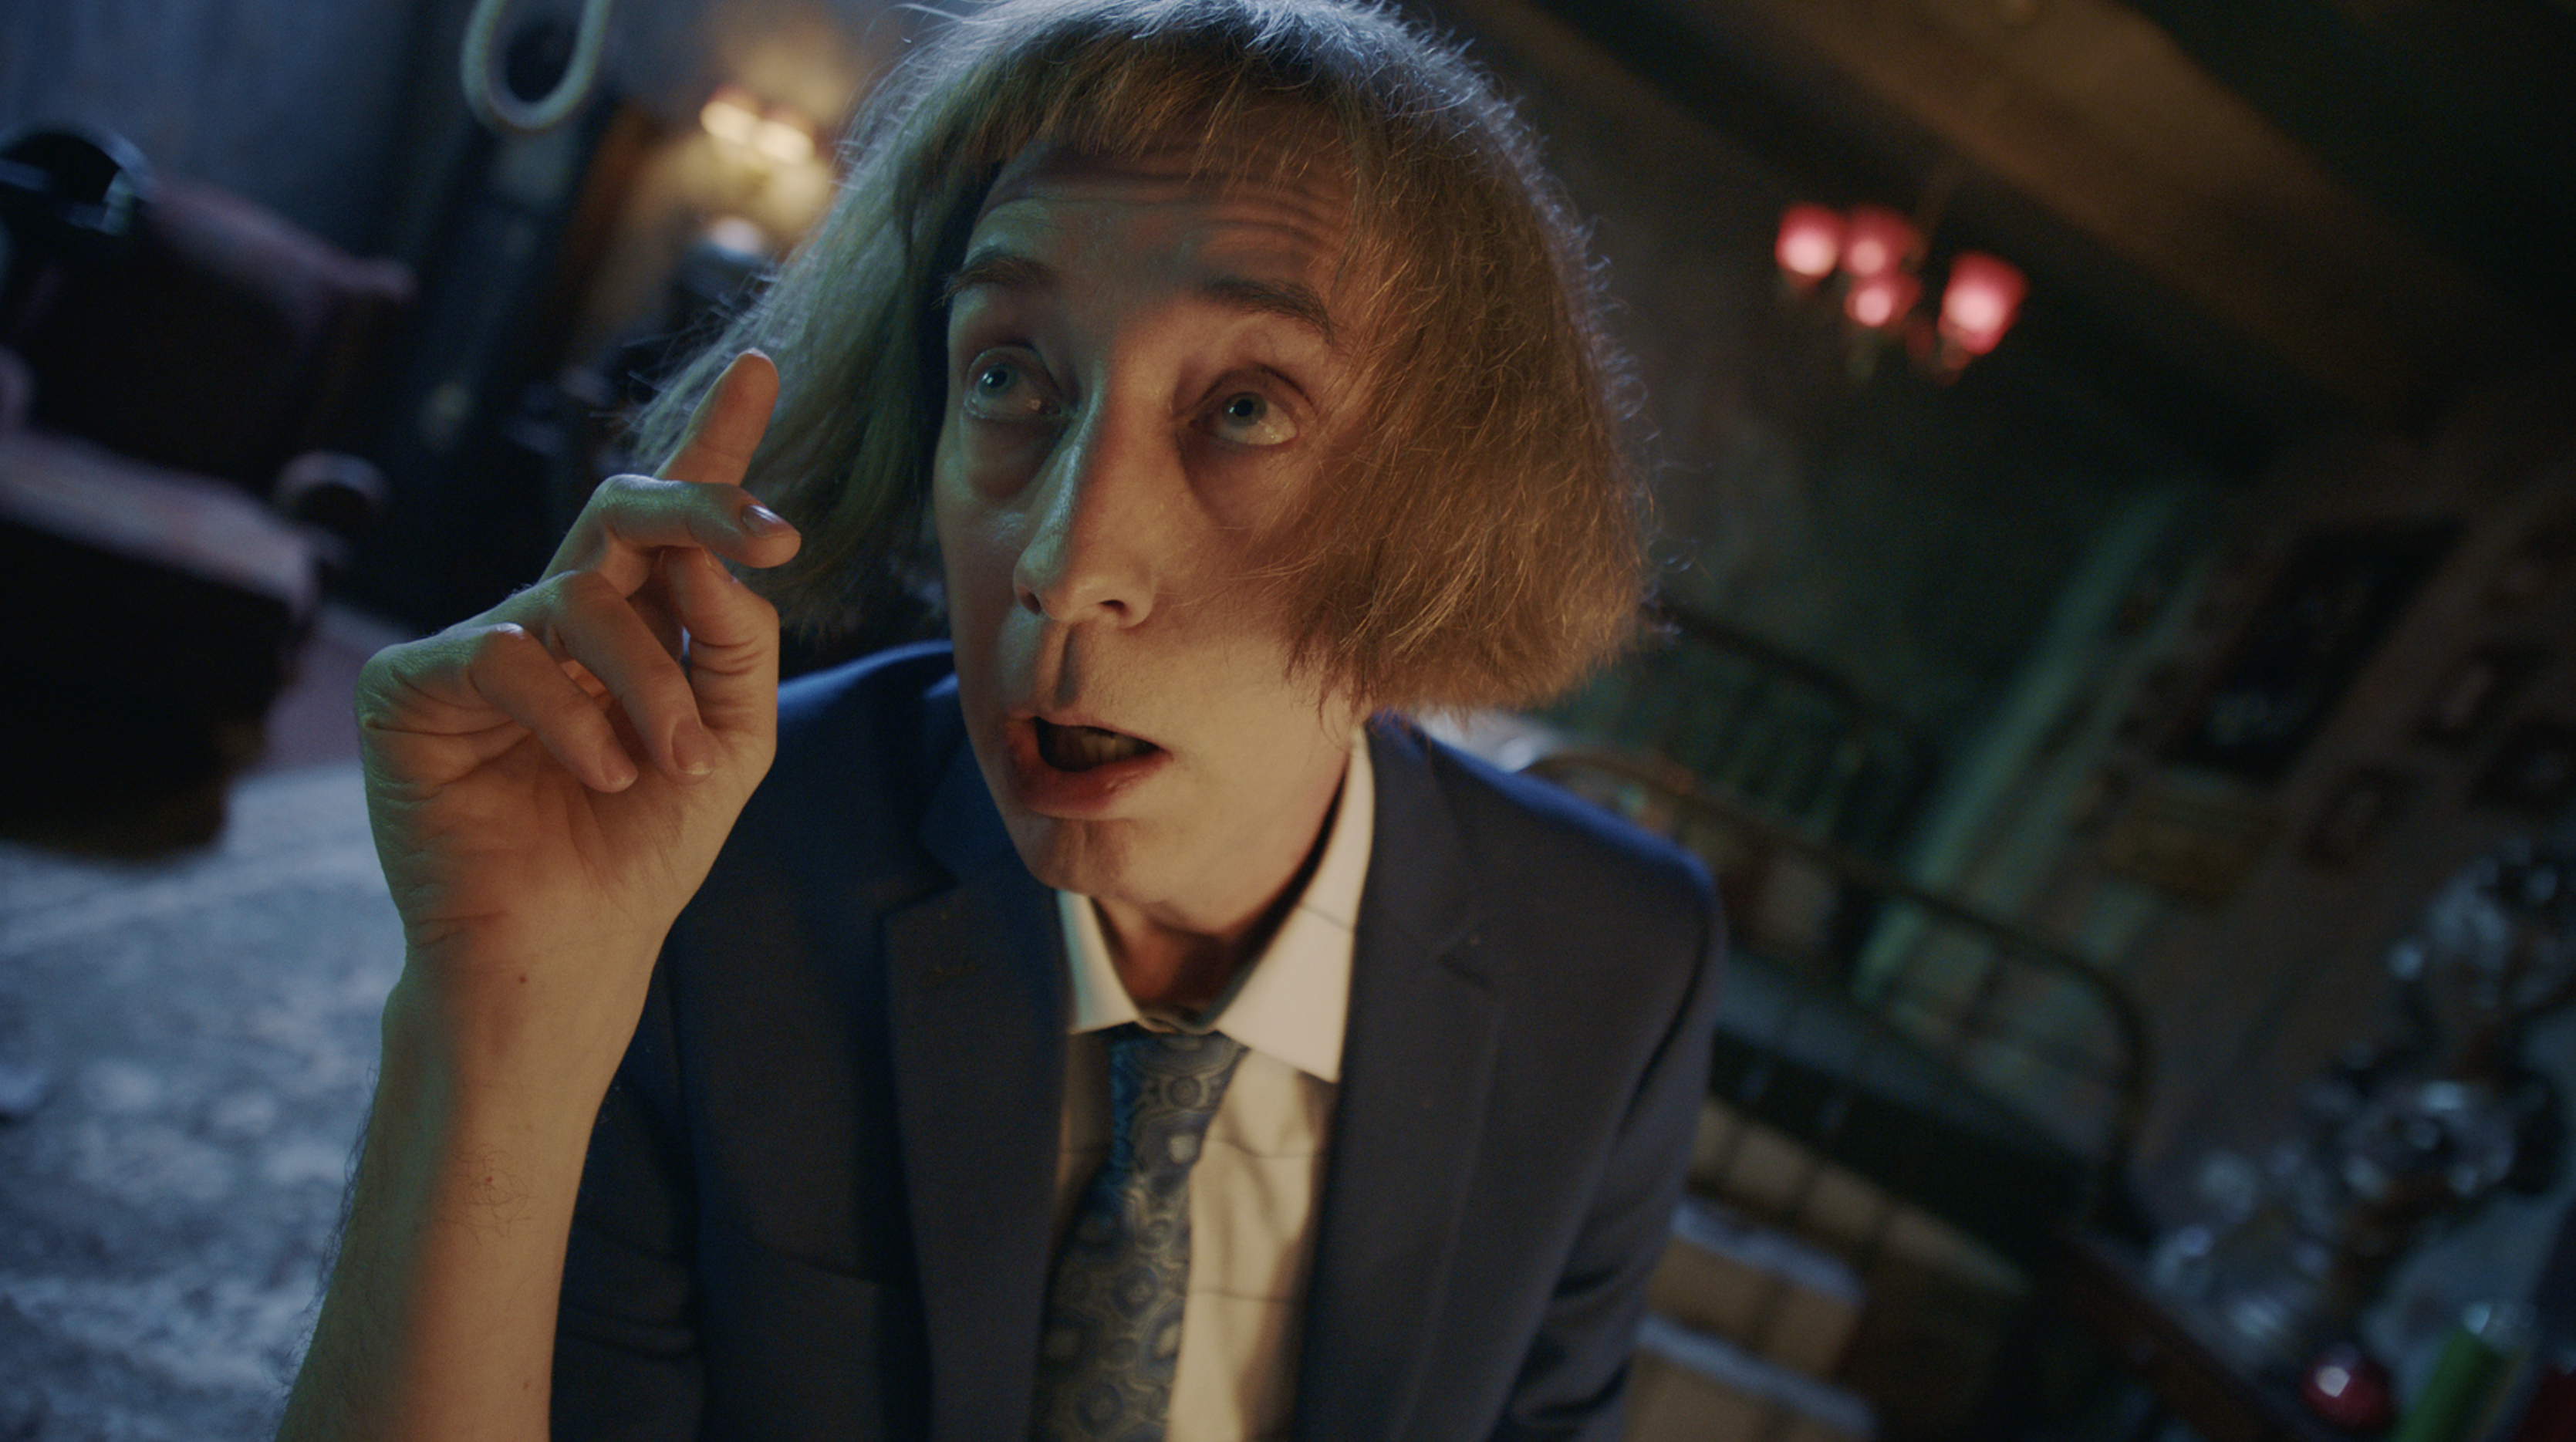 Emo Philips in Hunky Boys Go Ding-Dong (2018)